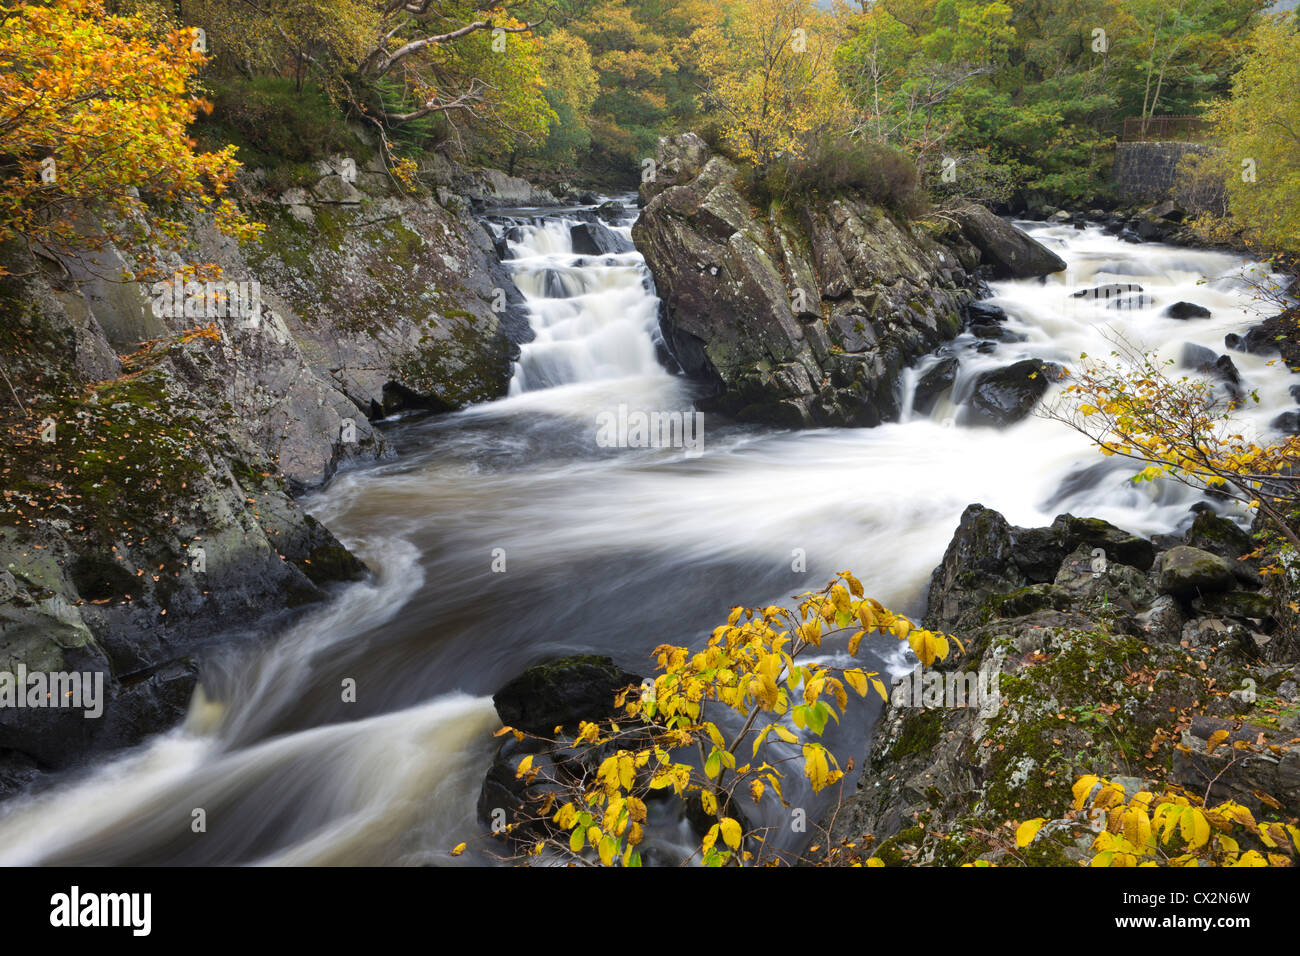 Autumn foliage surrounds the river Garbe Uisge at the Falls of Leny near Callander, Stirling, Scotland. Autumn (October) - Stock Image